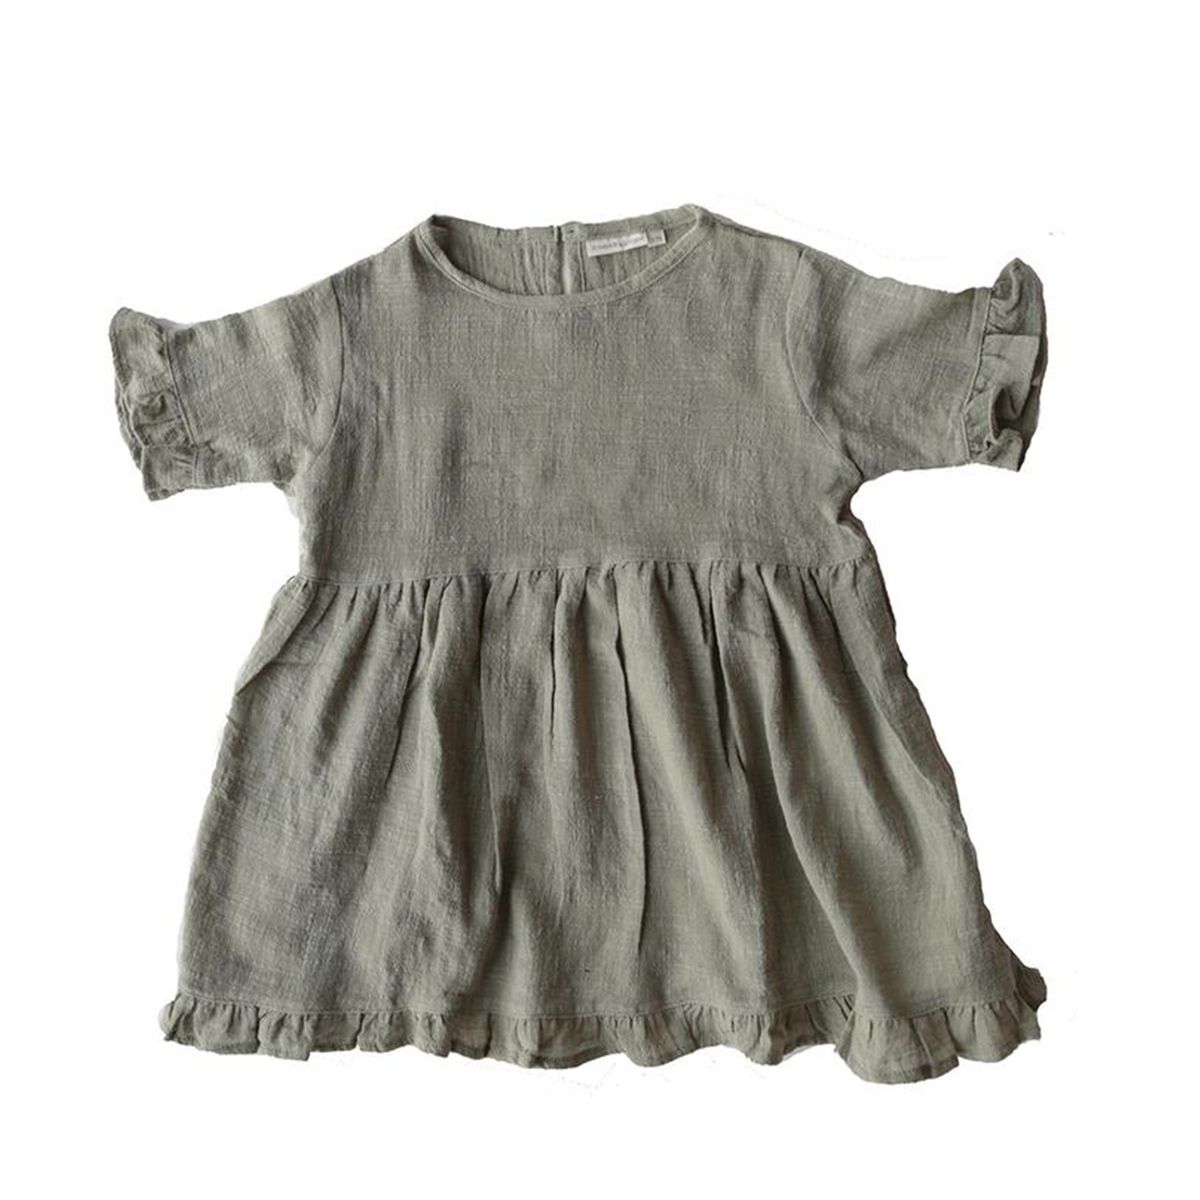 Summer and Storm Textured Frill Dress in Elm Green